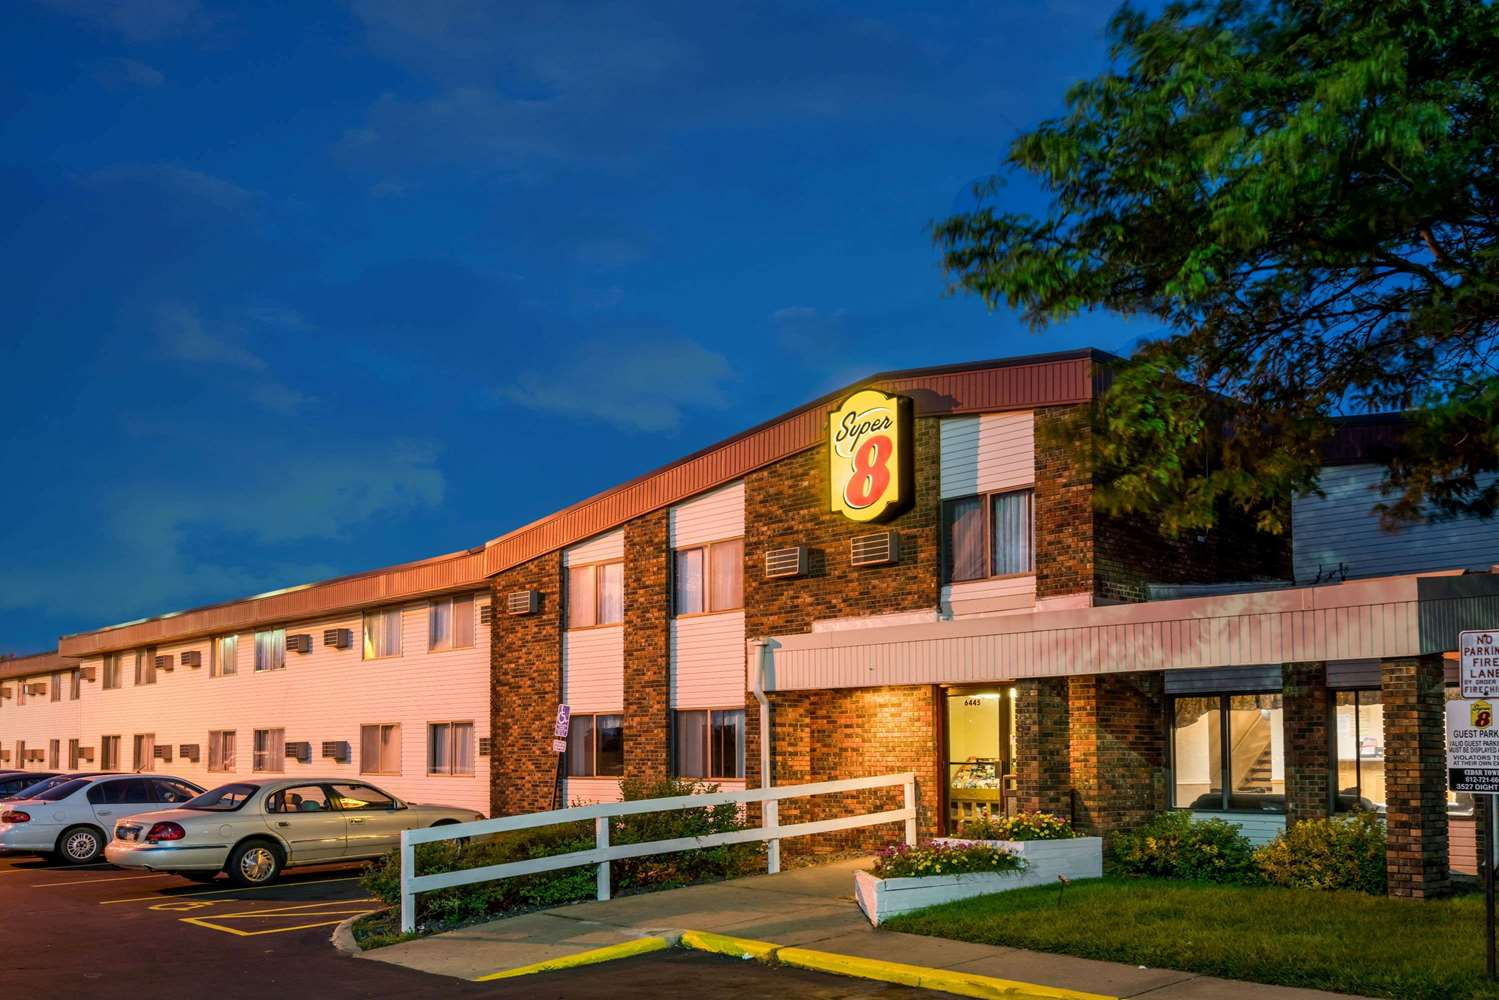 Super 8 Hotel Brooklyn Center